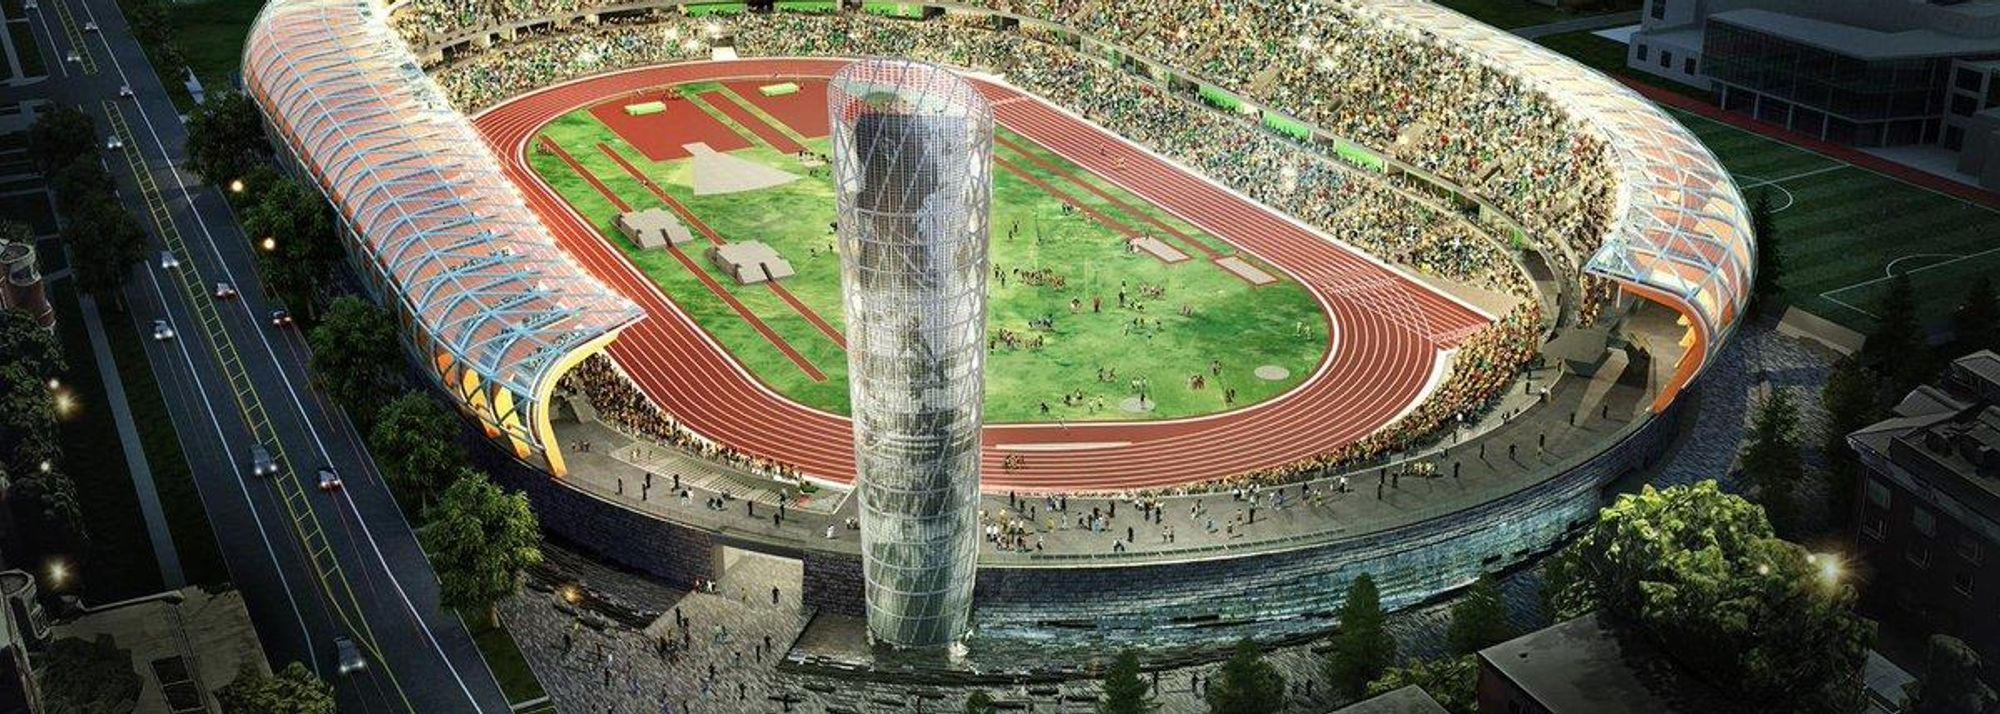 The World Athletics Council has approved the qualification systems for the World Athletics Championships Oregon22 and the World Athletics U20 Championships Nairobi 2021.